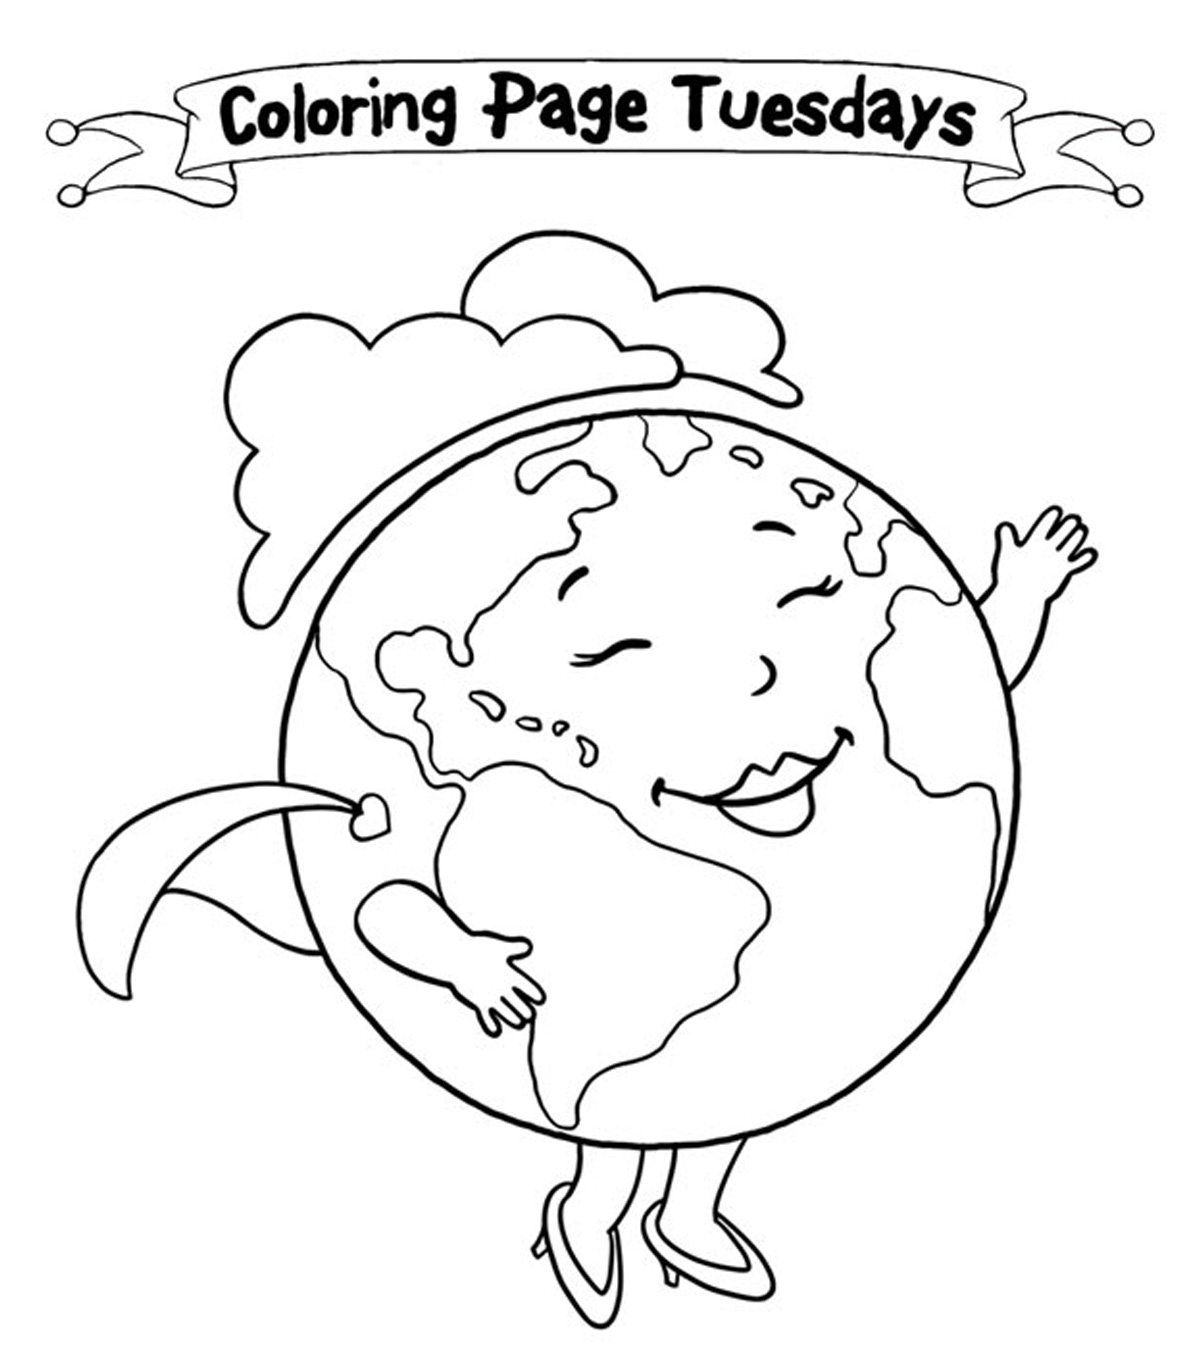 Earth Day Coloring Pages Top 20 Free Printable Earth Day Coloring Pages Online